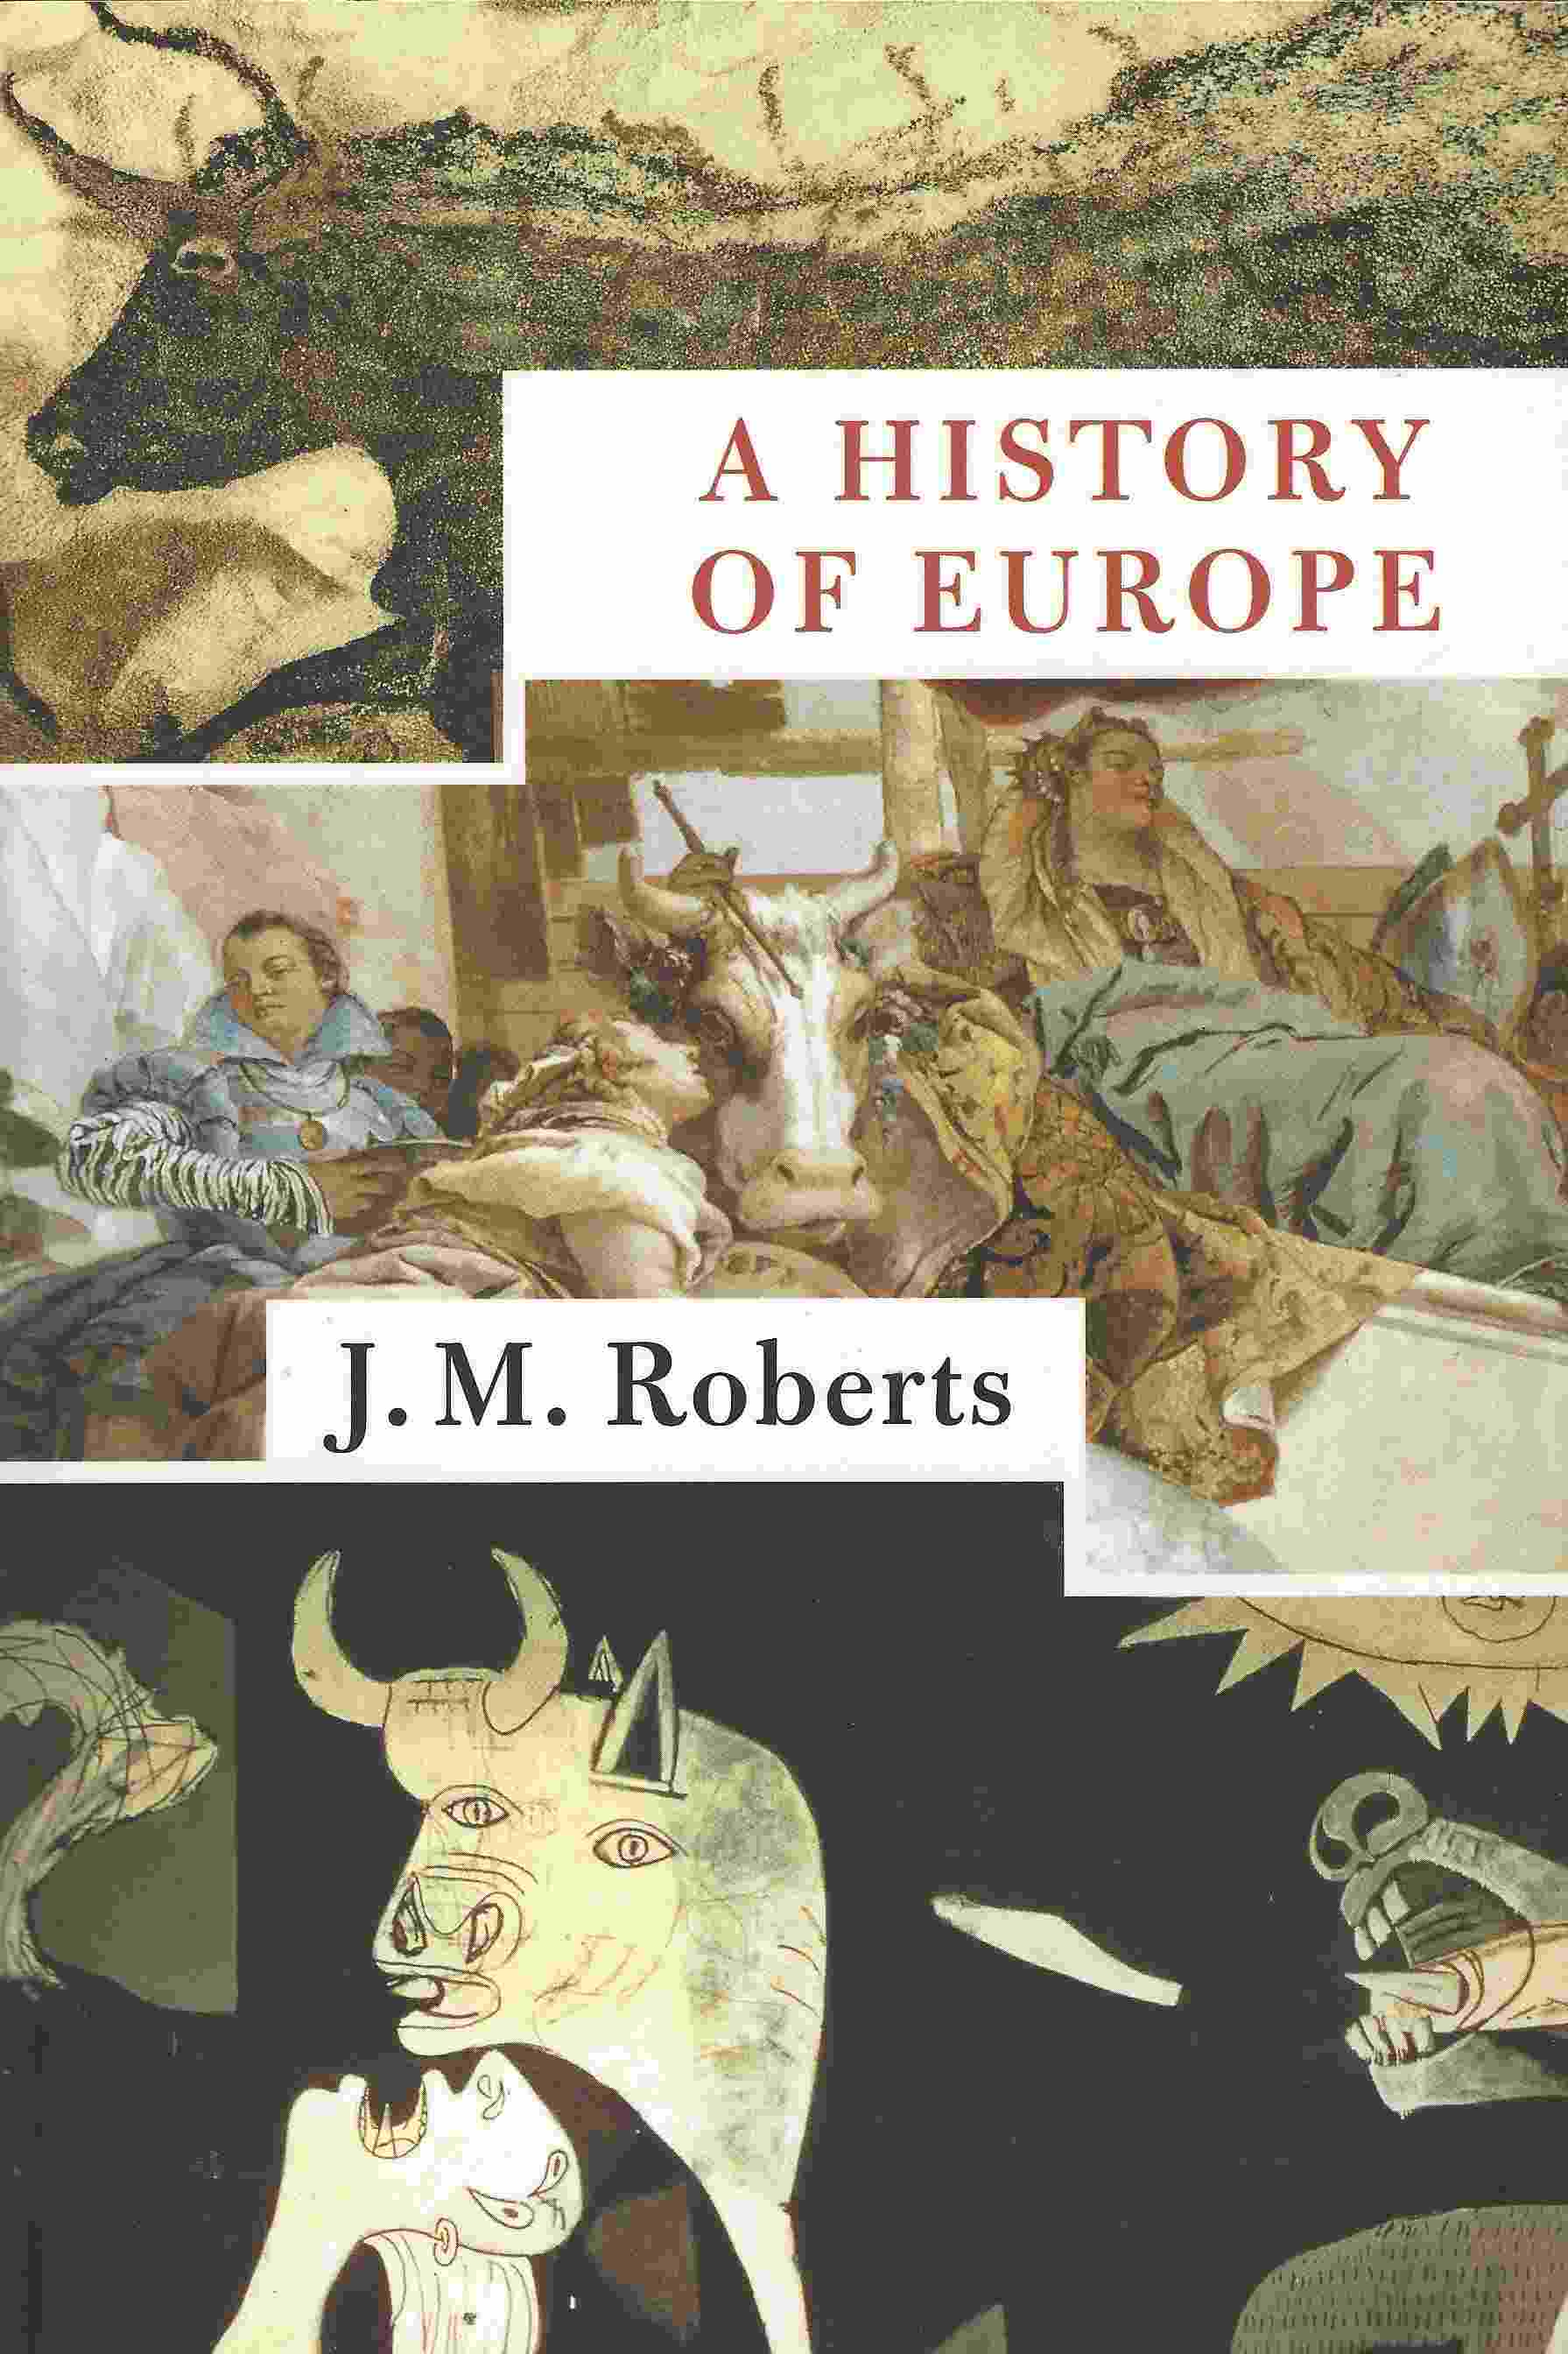 Image for A HISTORY OF EUROPE